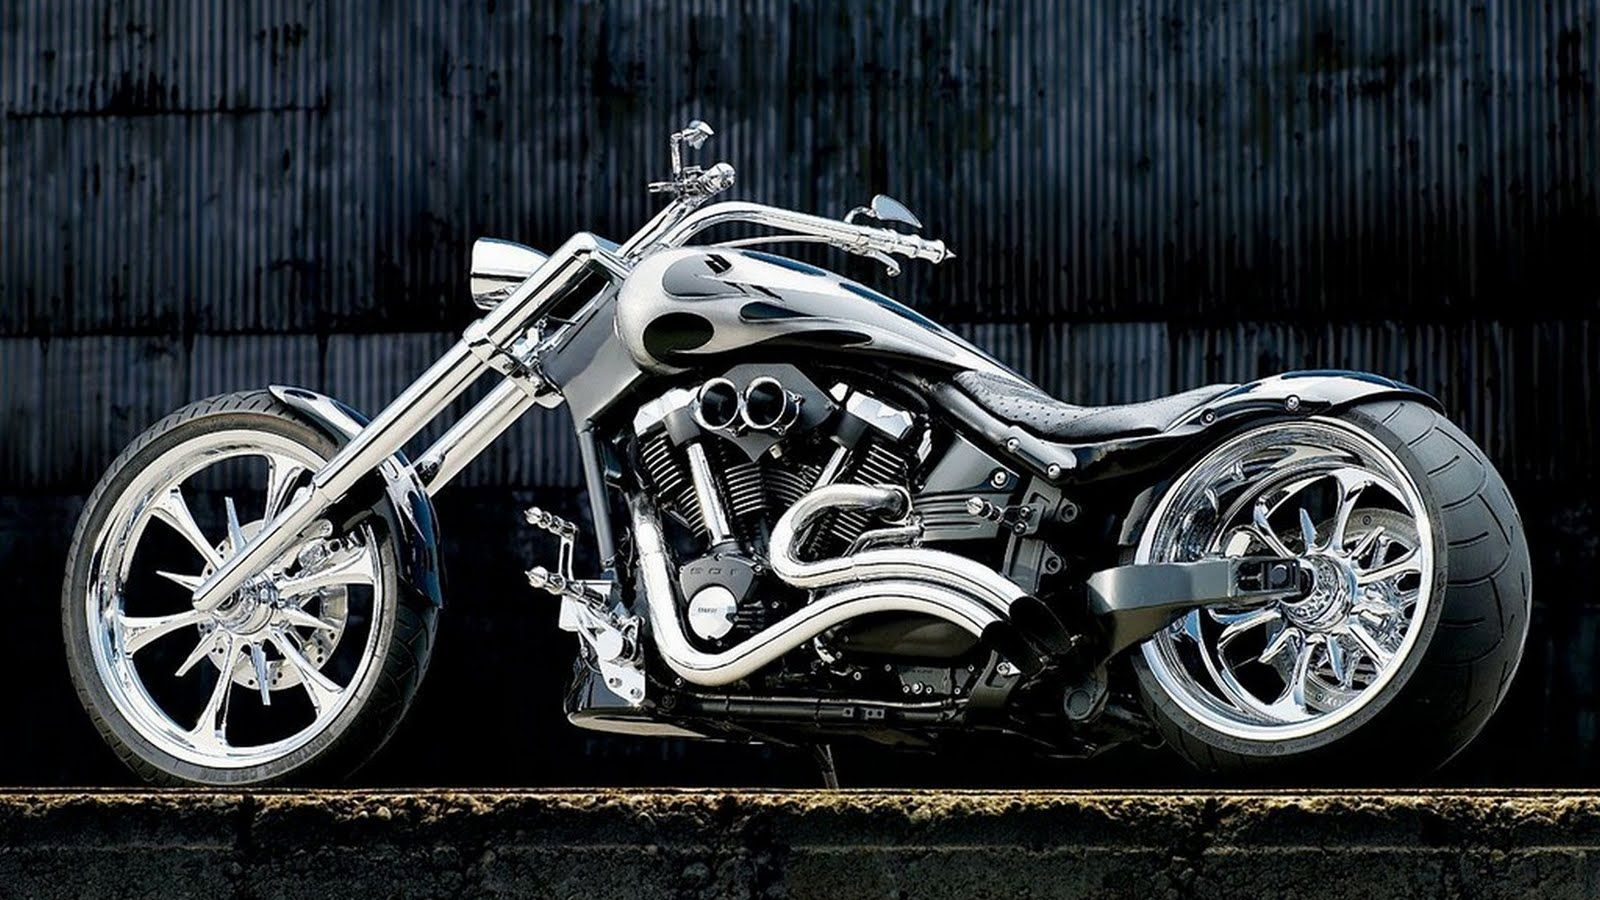 download preety motorcycle hd - photo #20